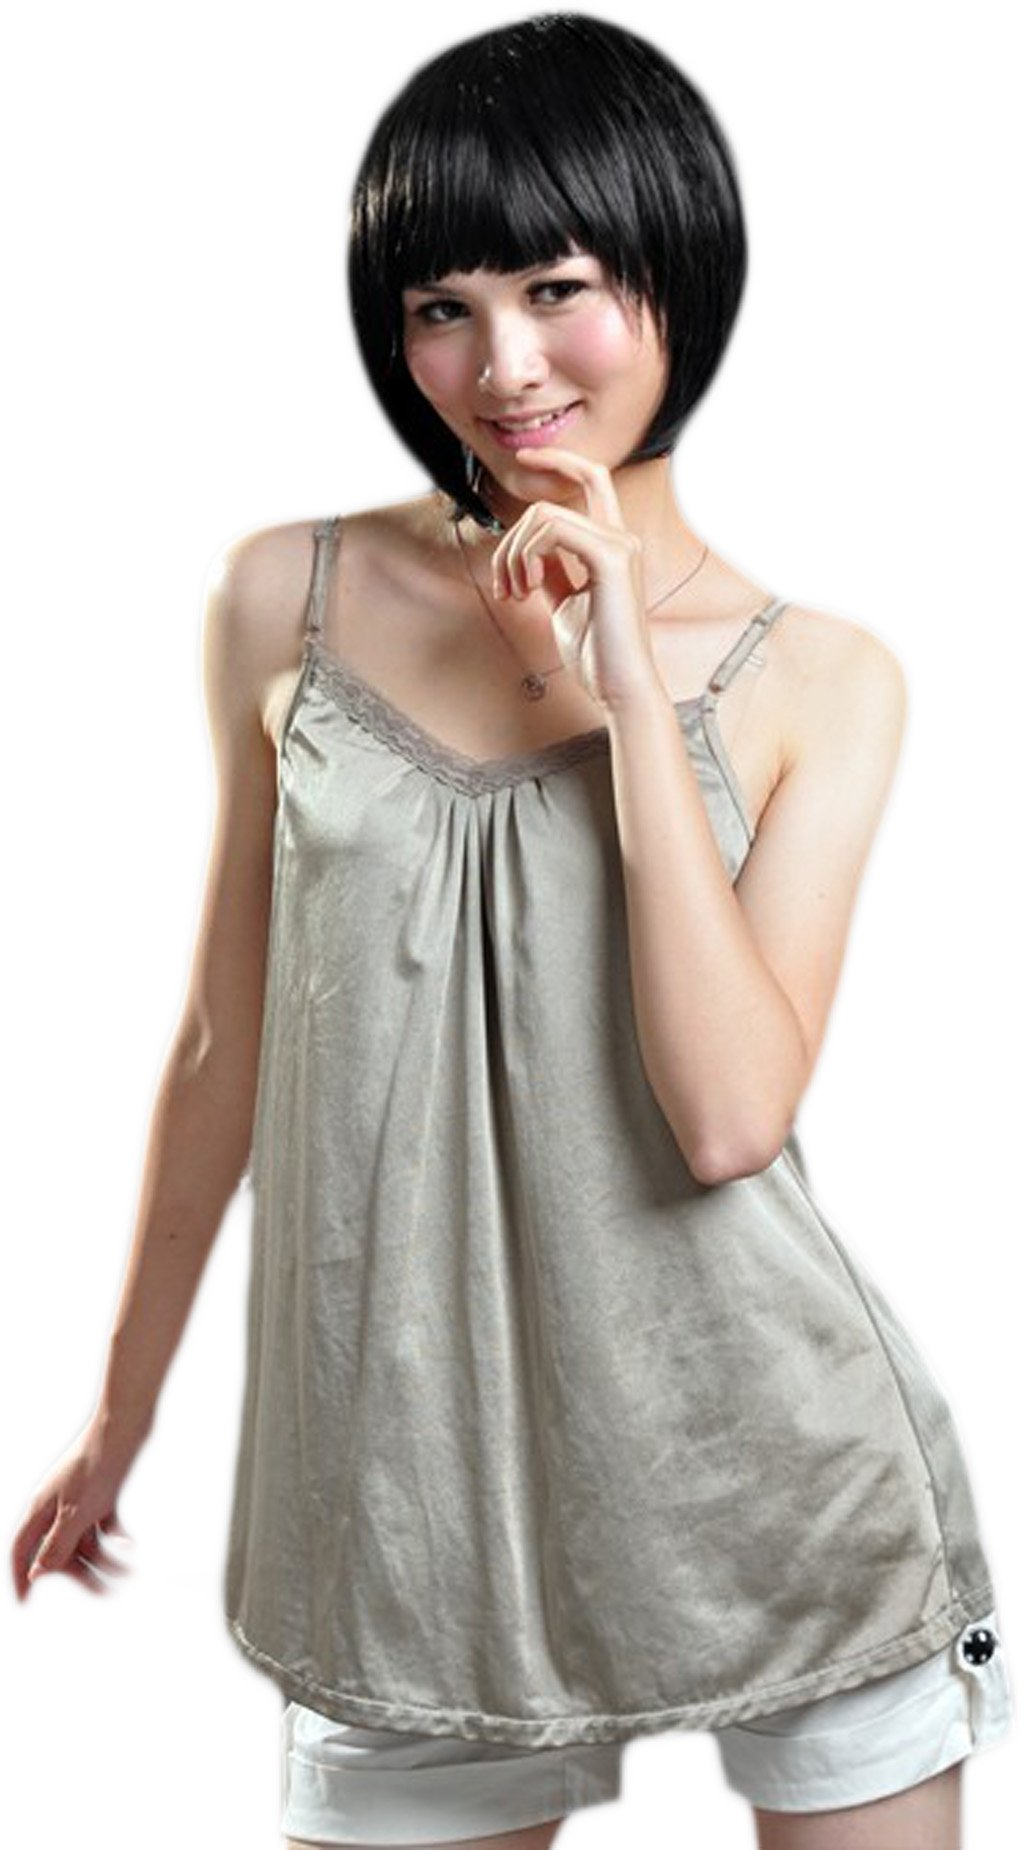 Anti-Radiation Maternity Tank Top Camisole Dresses Baby Protection Shield 800617